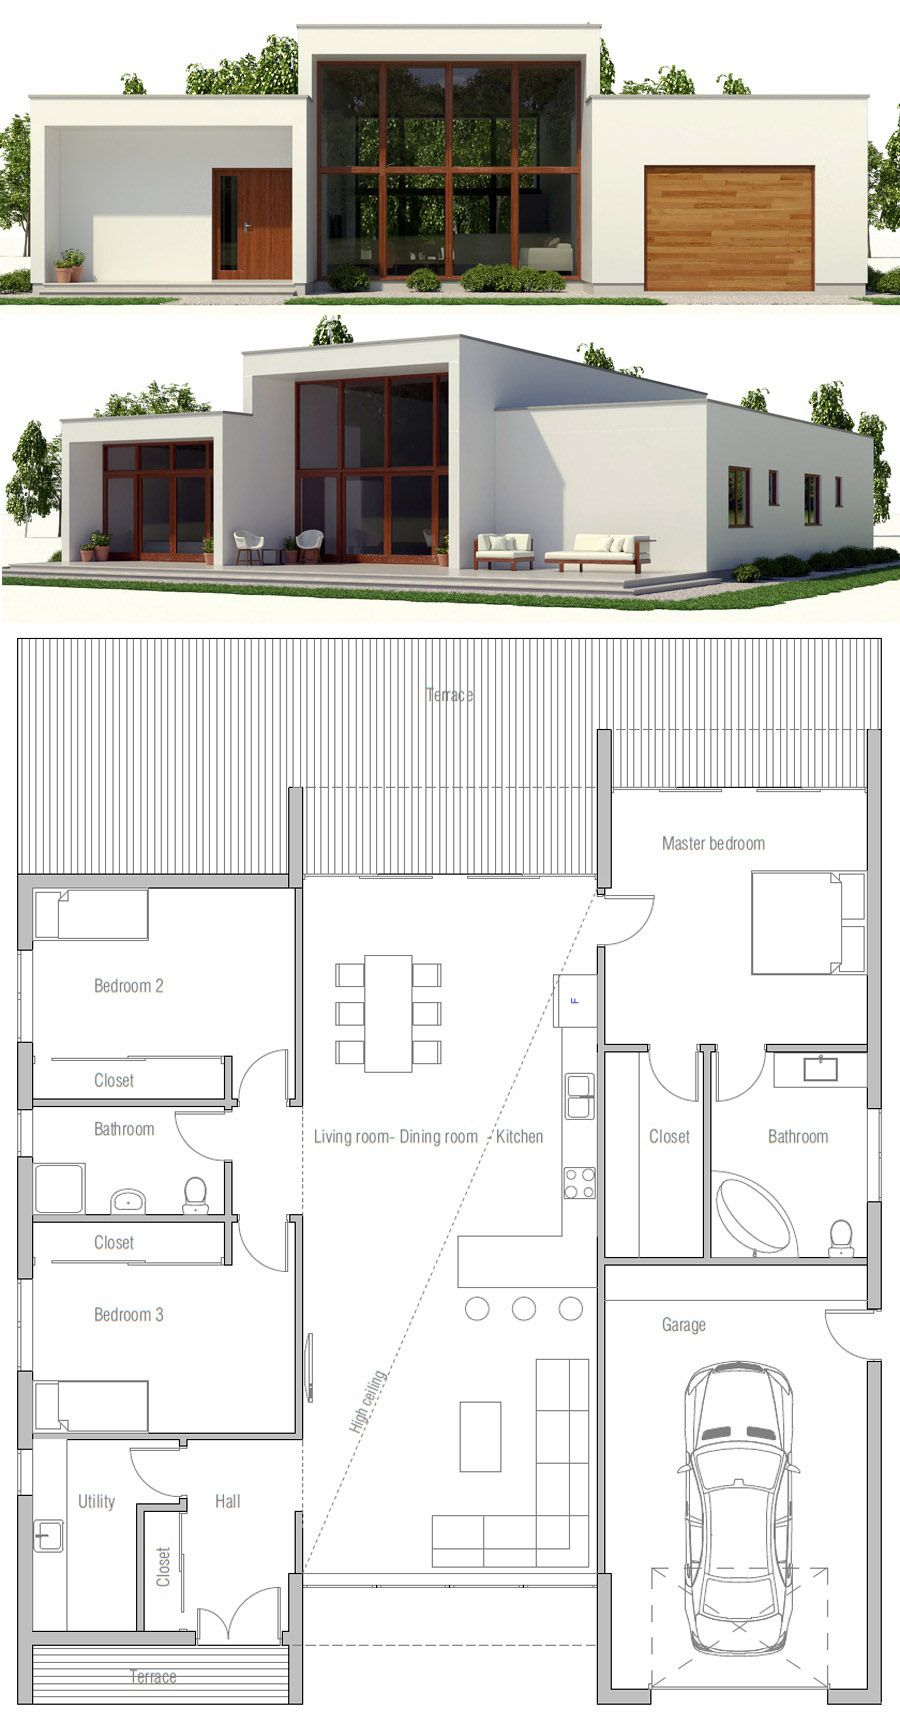 House Plan Ch393 Minimalist House Design Modern Minimalist House House Plans